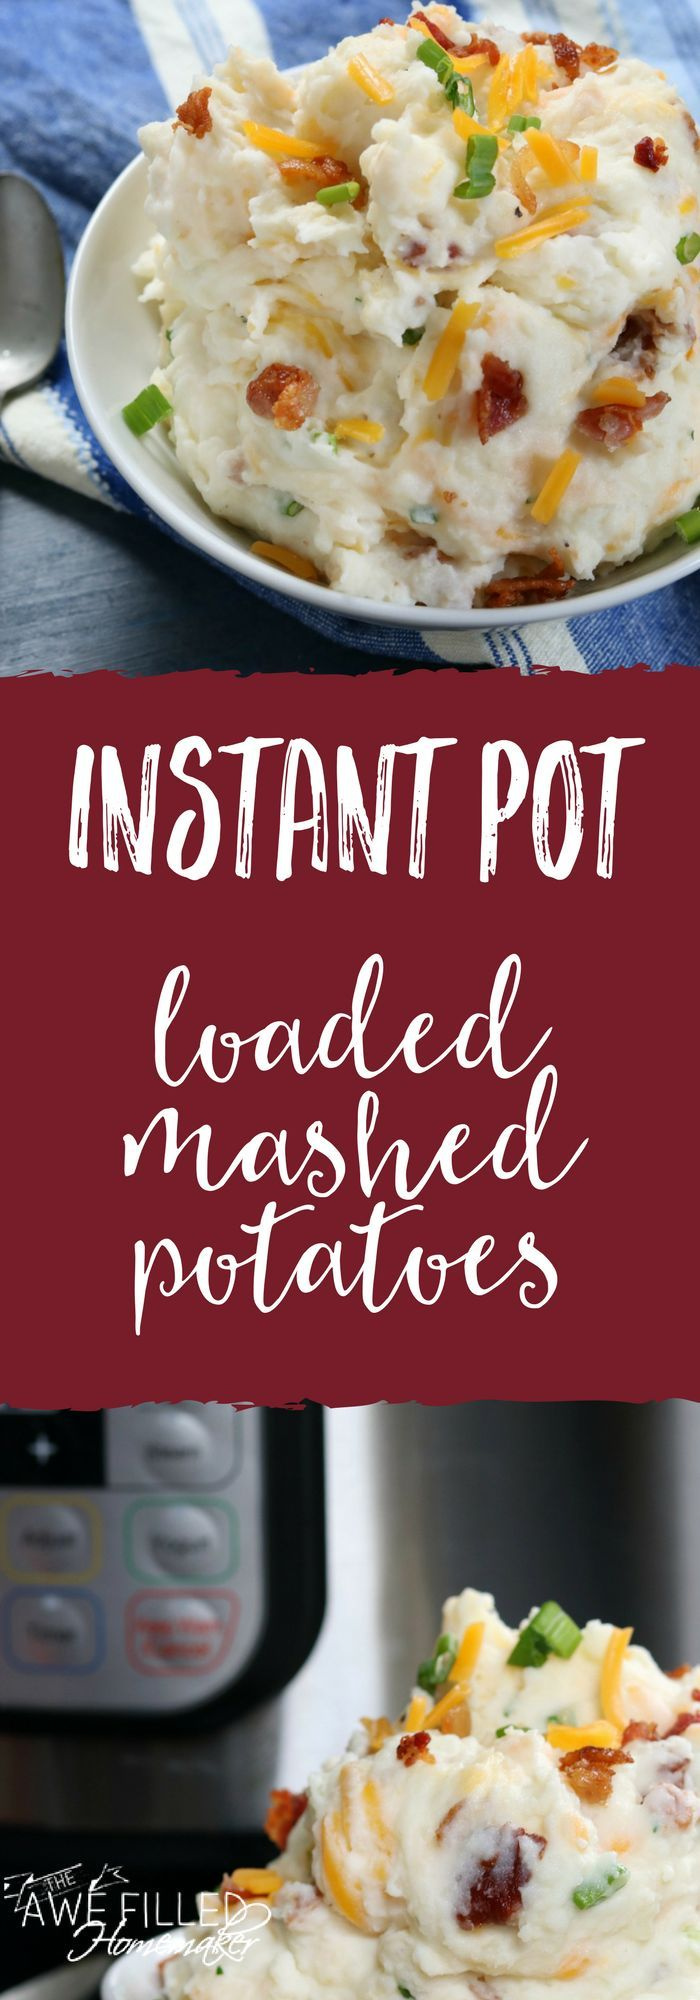 Shut the front door and butter my biscuit! A traditional southern comfort food just got even better with this instant pot loaded mashed potato recipe! YUM! #instantpot #mashedpotatoes #loadedmashedpotatoes #southernfood #instantpotmashedpotatoes  via @AFHomemaker